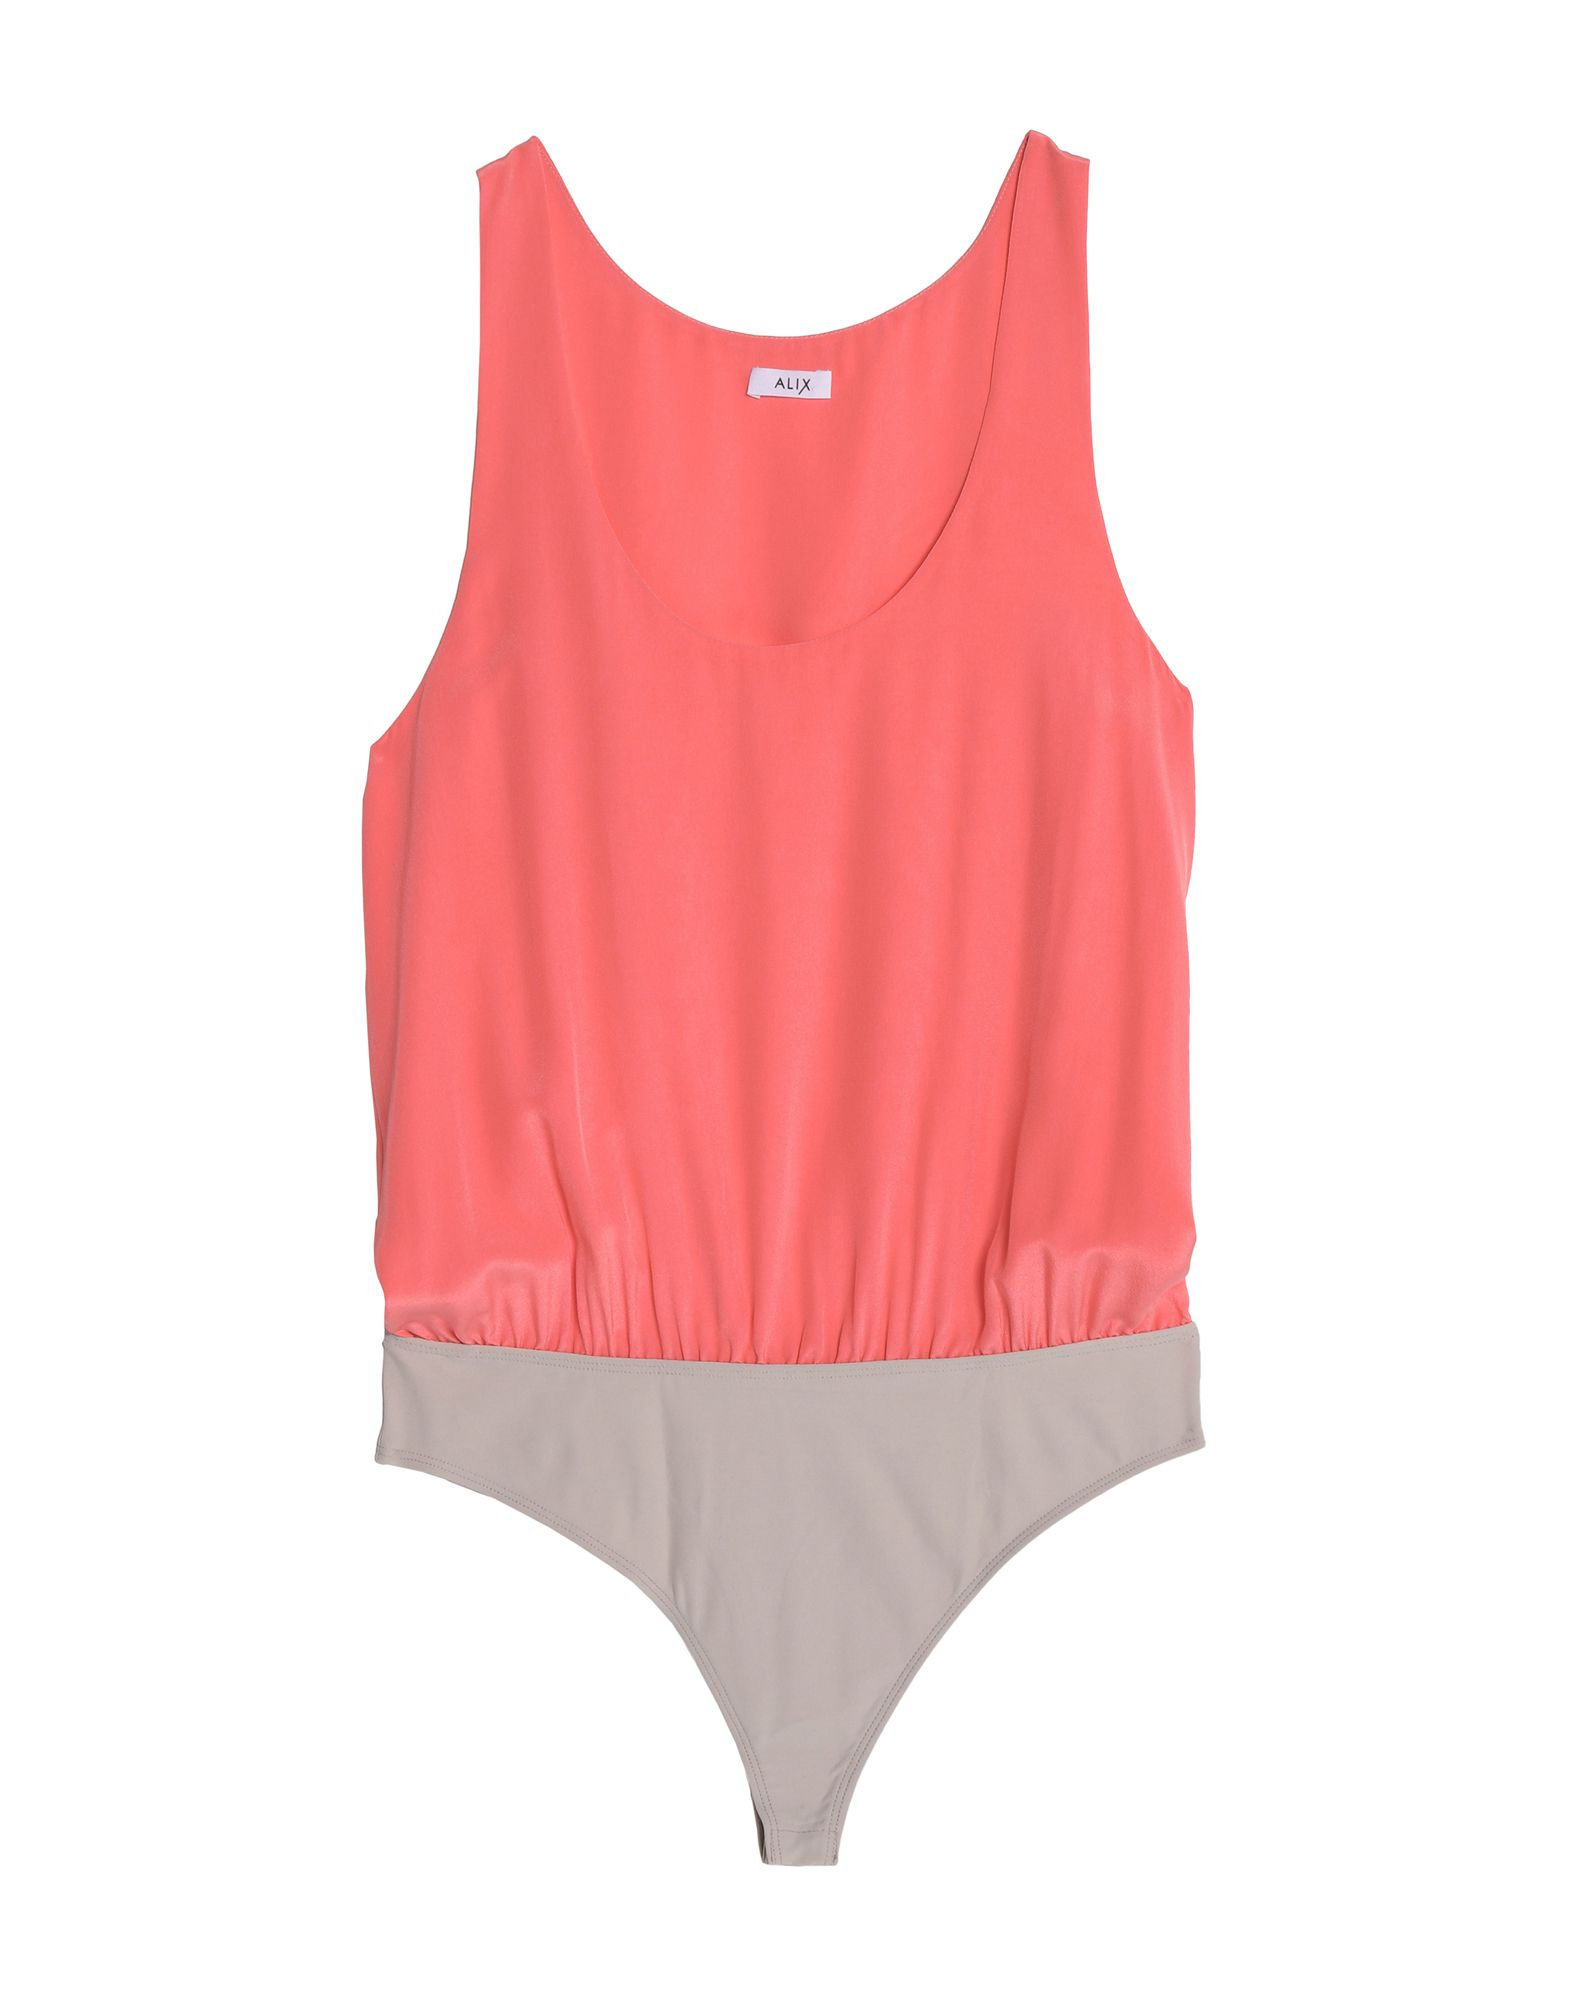 Alix Bodysuits In Salmon Pink